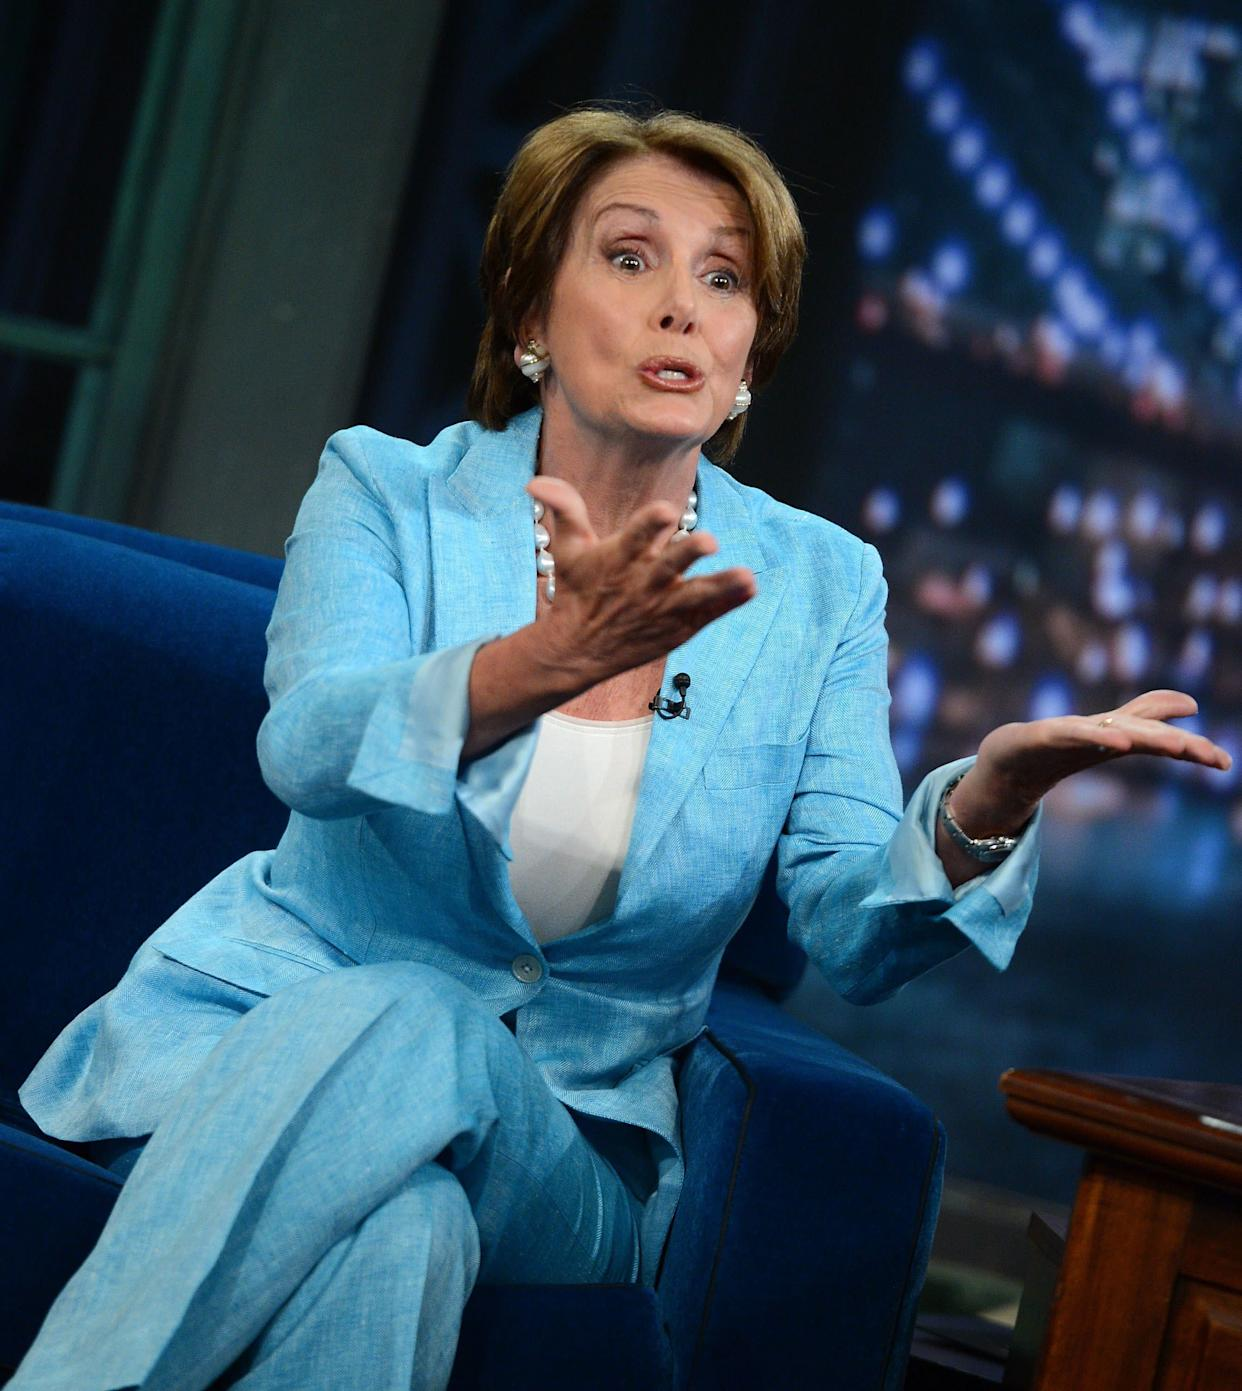 Congresswoman Nancy Pelosi visits 'Late Night With Jimmy Fallon' at Rockefeller Center on August 17, 2012 in New York City. (Photo by Jason Kempin/Getty Images)